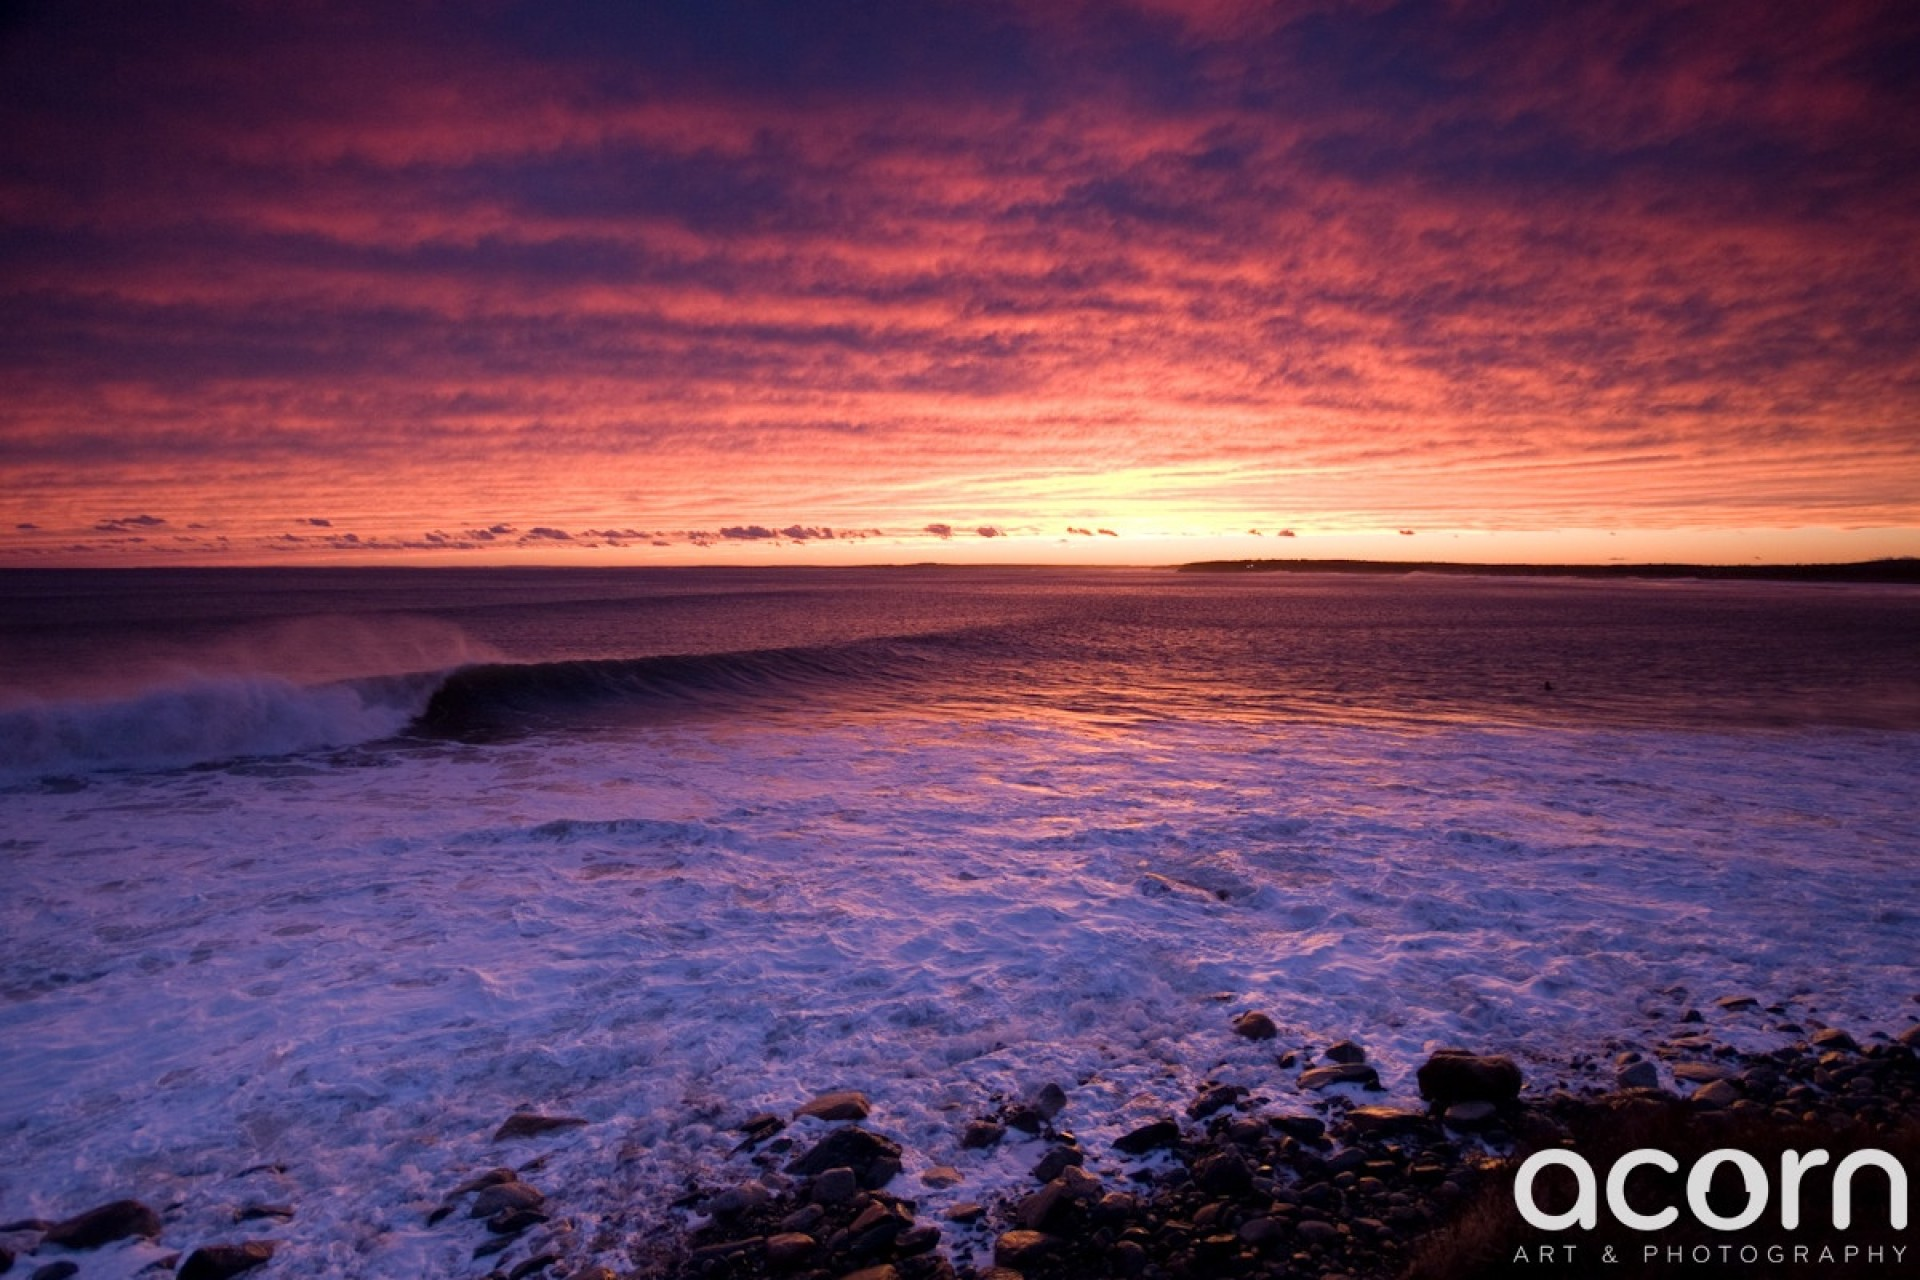 Adam Cornick's photo of Lawrencetown